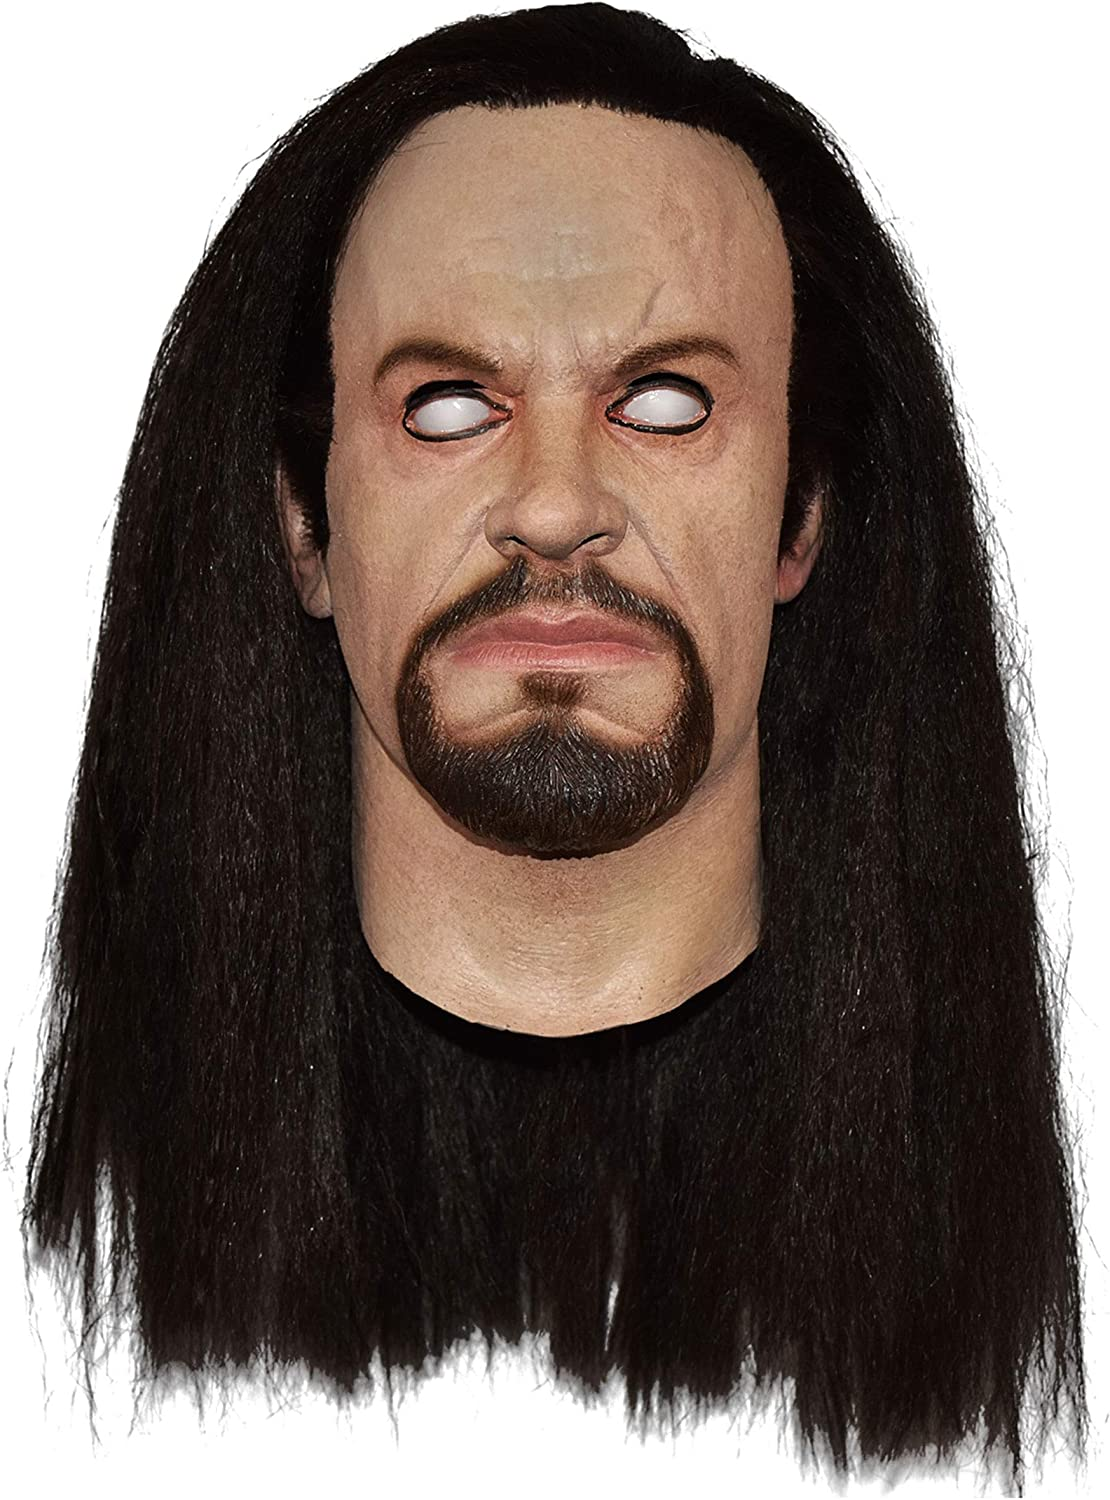 Outlet ☆ Free Latest item Shipping WWE The Undertaker Standard Mask